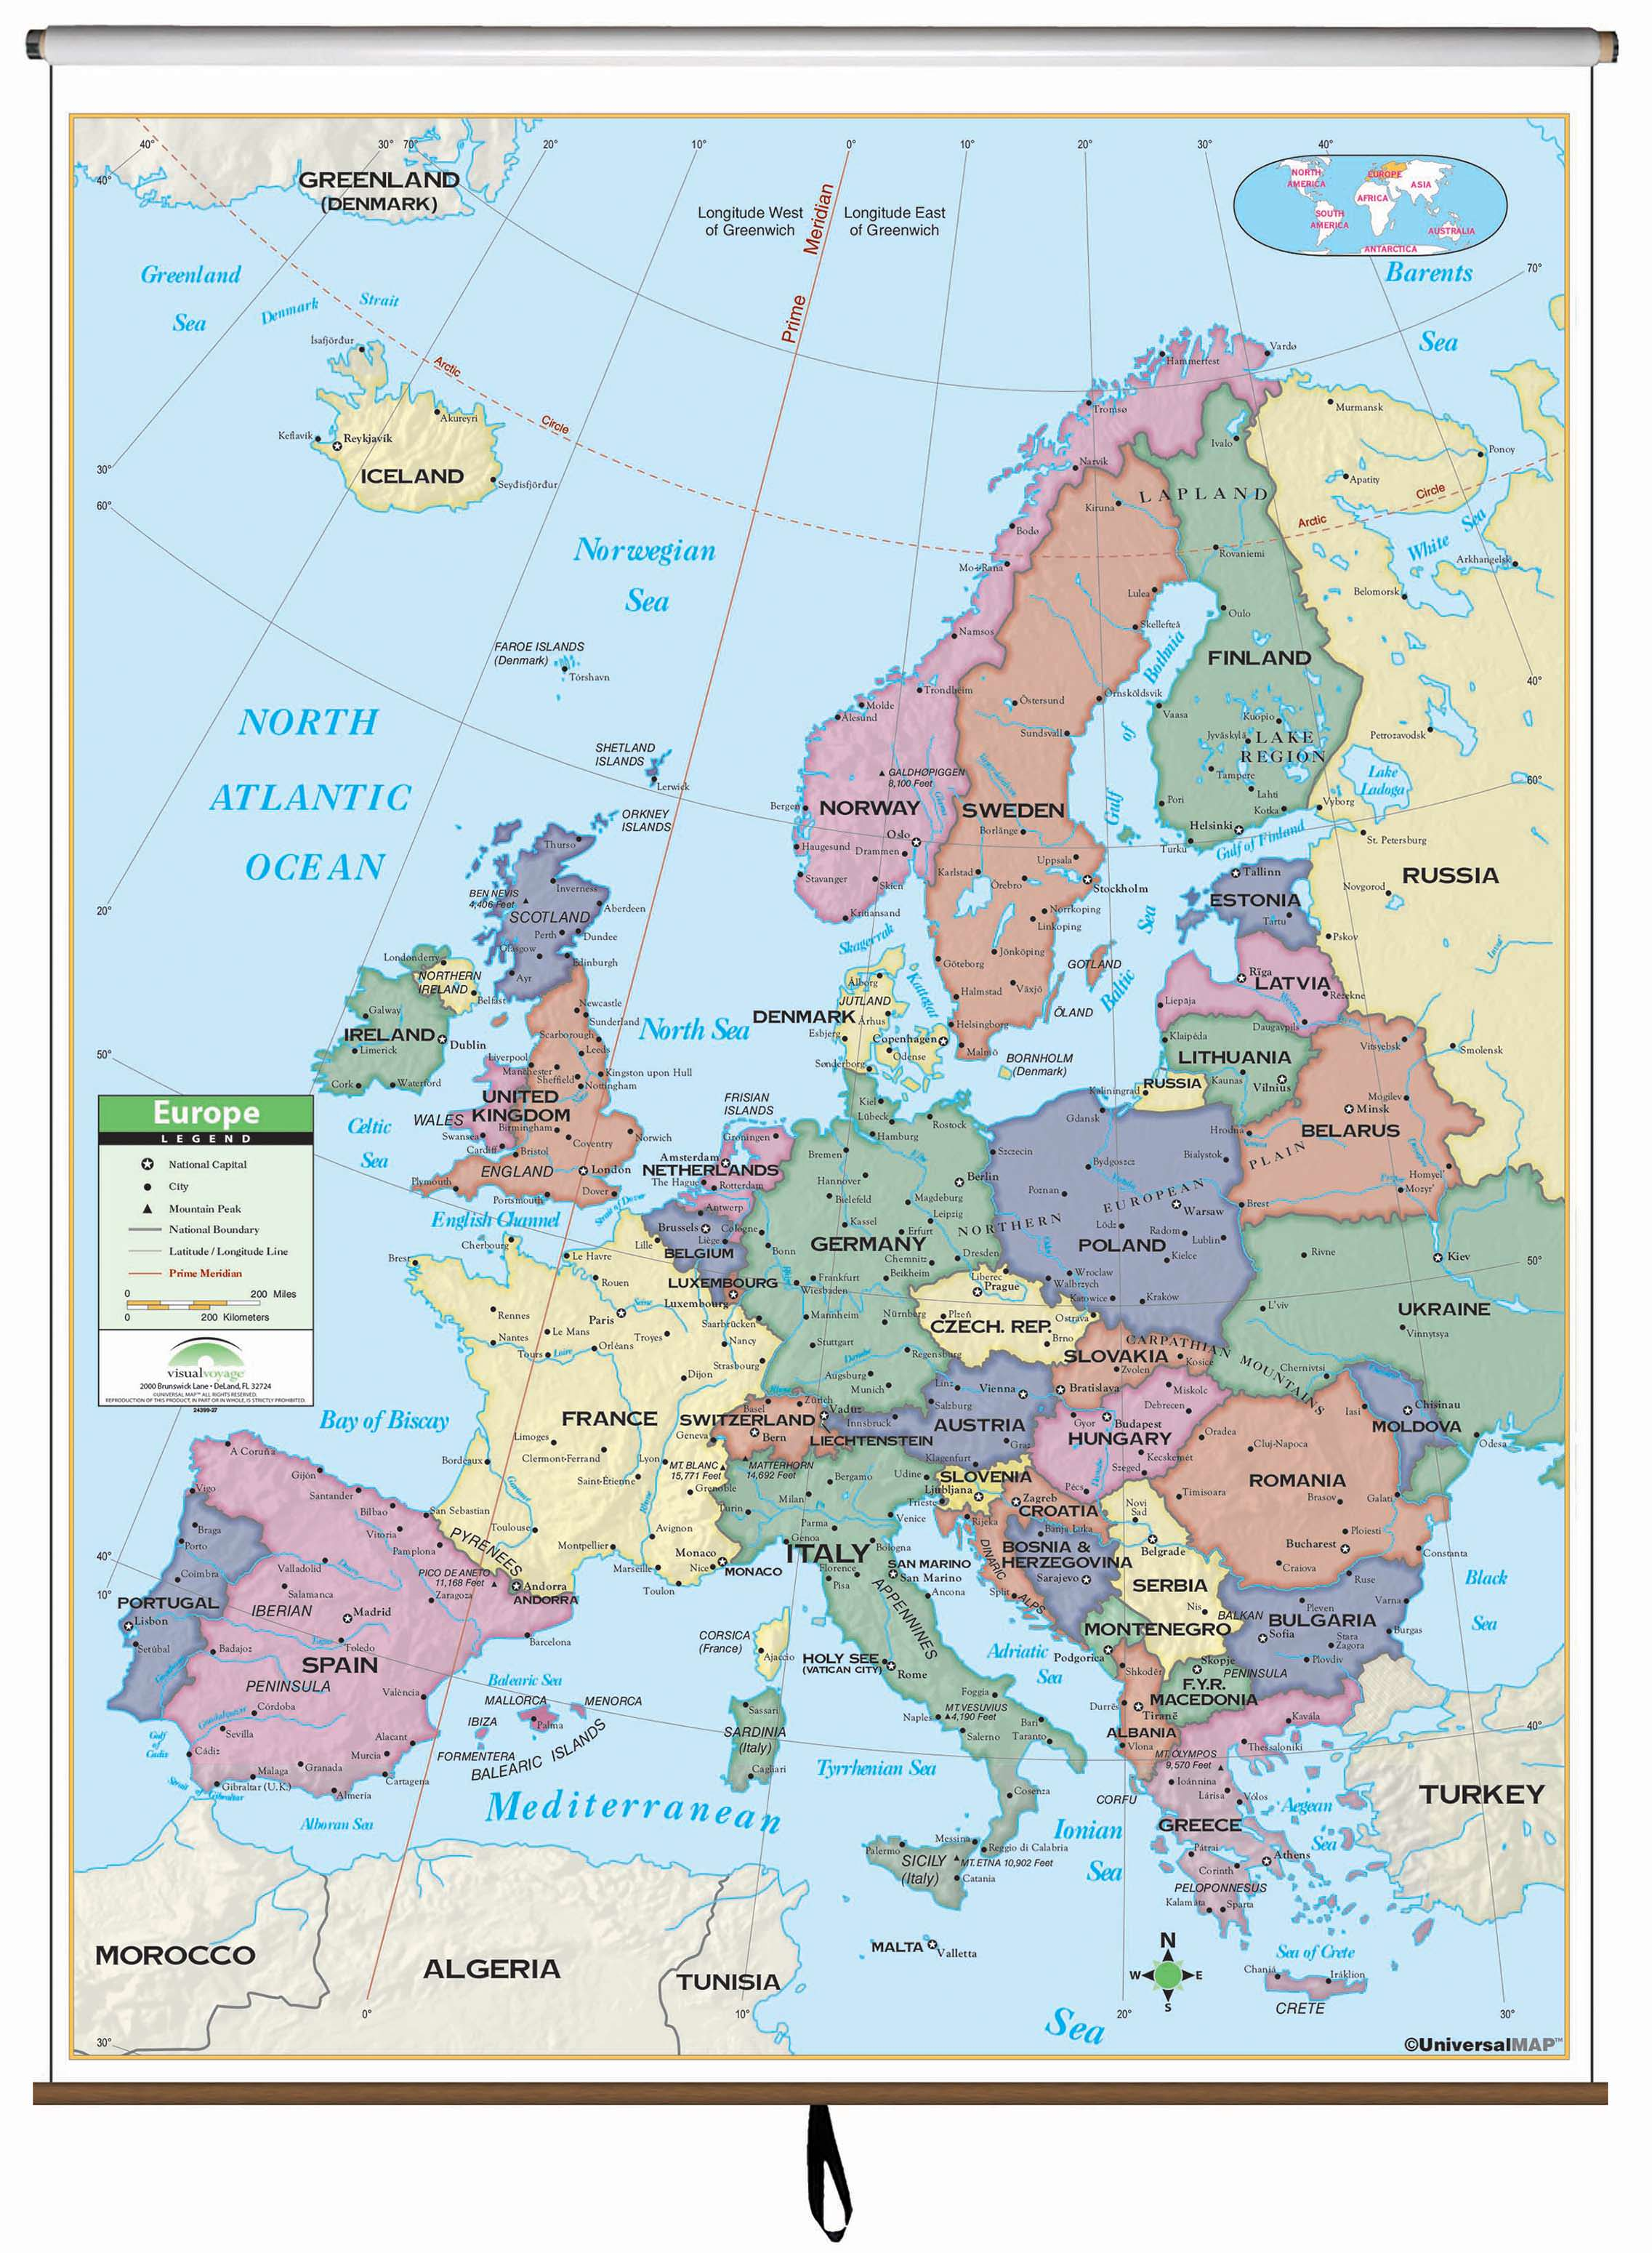 Europe Primary Classroom Wall Map on Roller KAPPA MAP GROUP